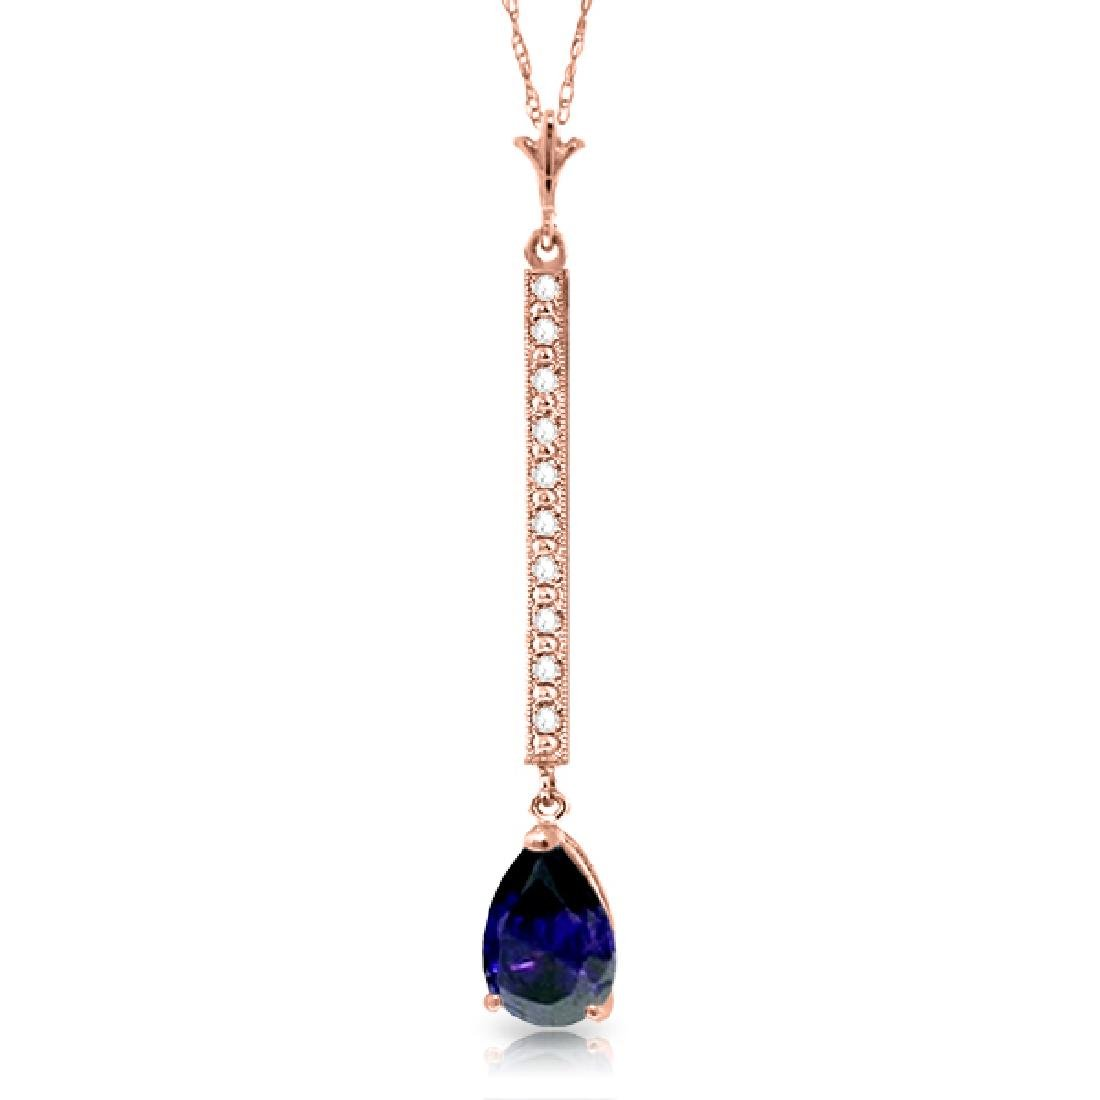 Genuine 1.80 ctw Sapphire & Diamond Necklace Jewelry